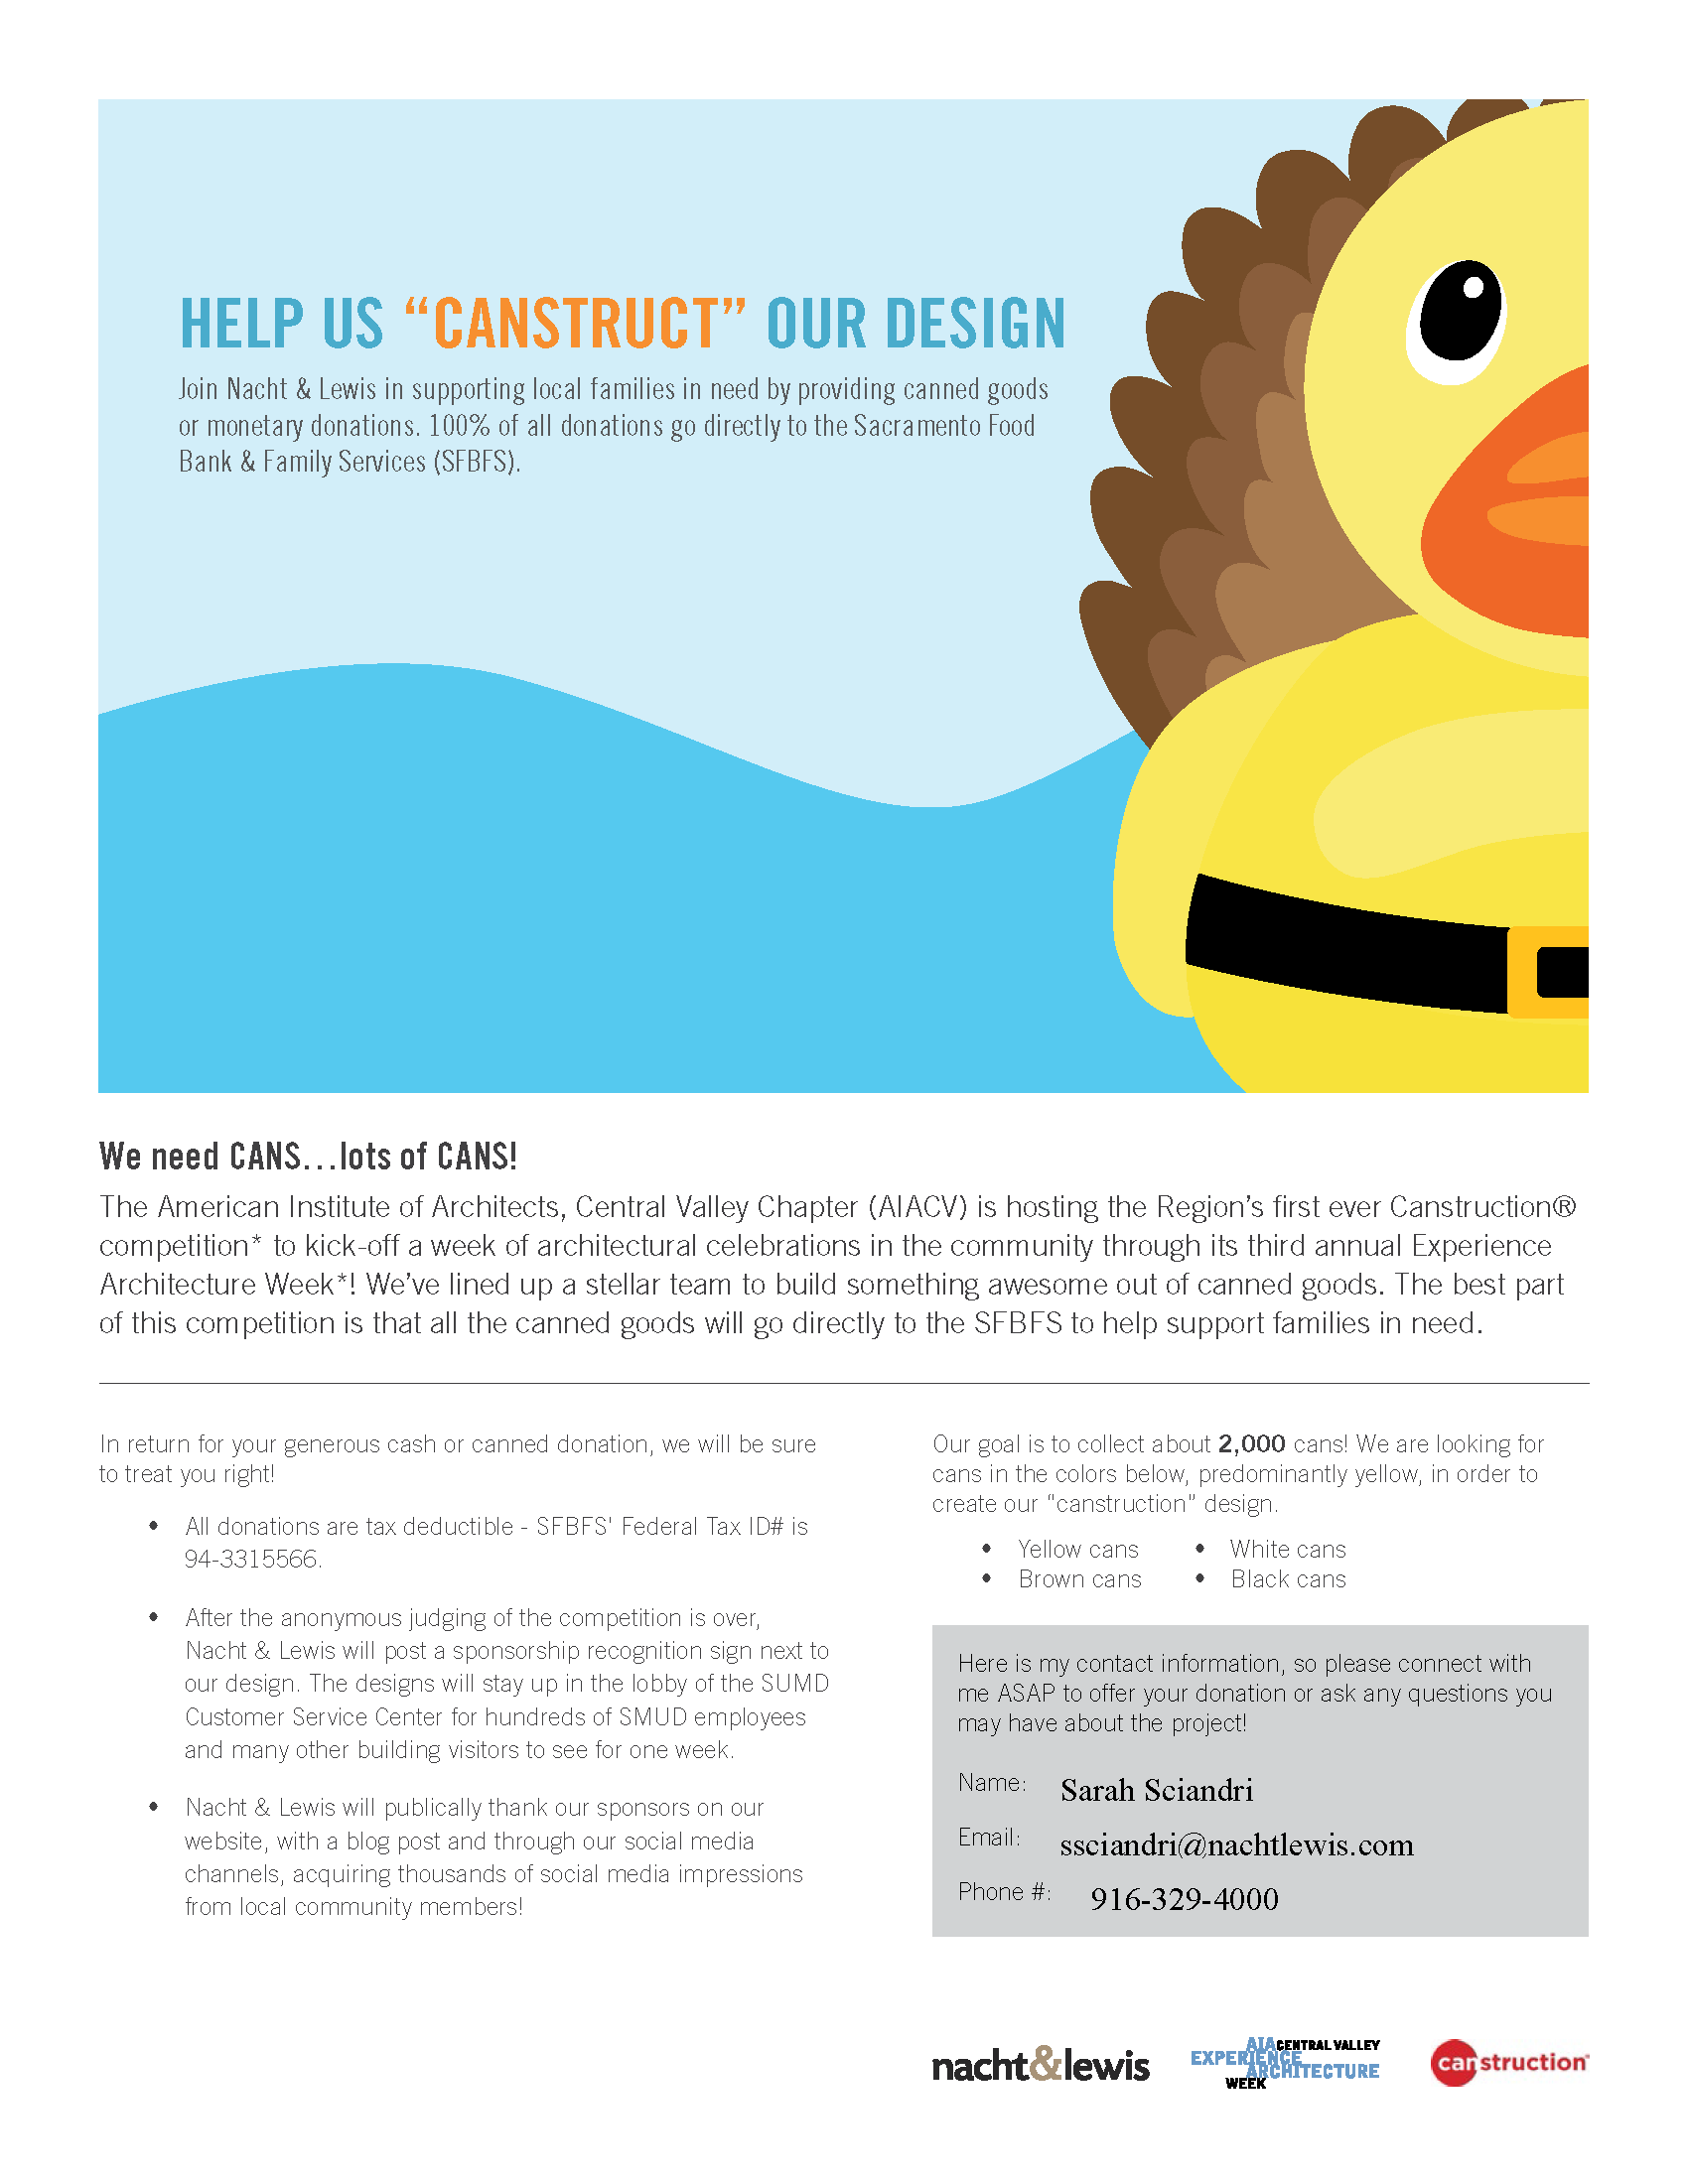 Nacht & Lewis Canstruction Flyer FINAL_9.9.14_Page_1